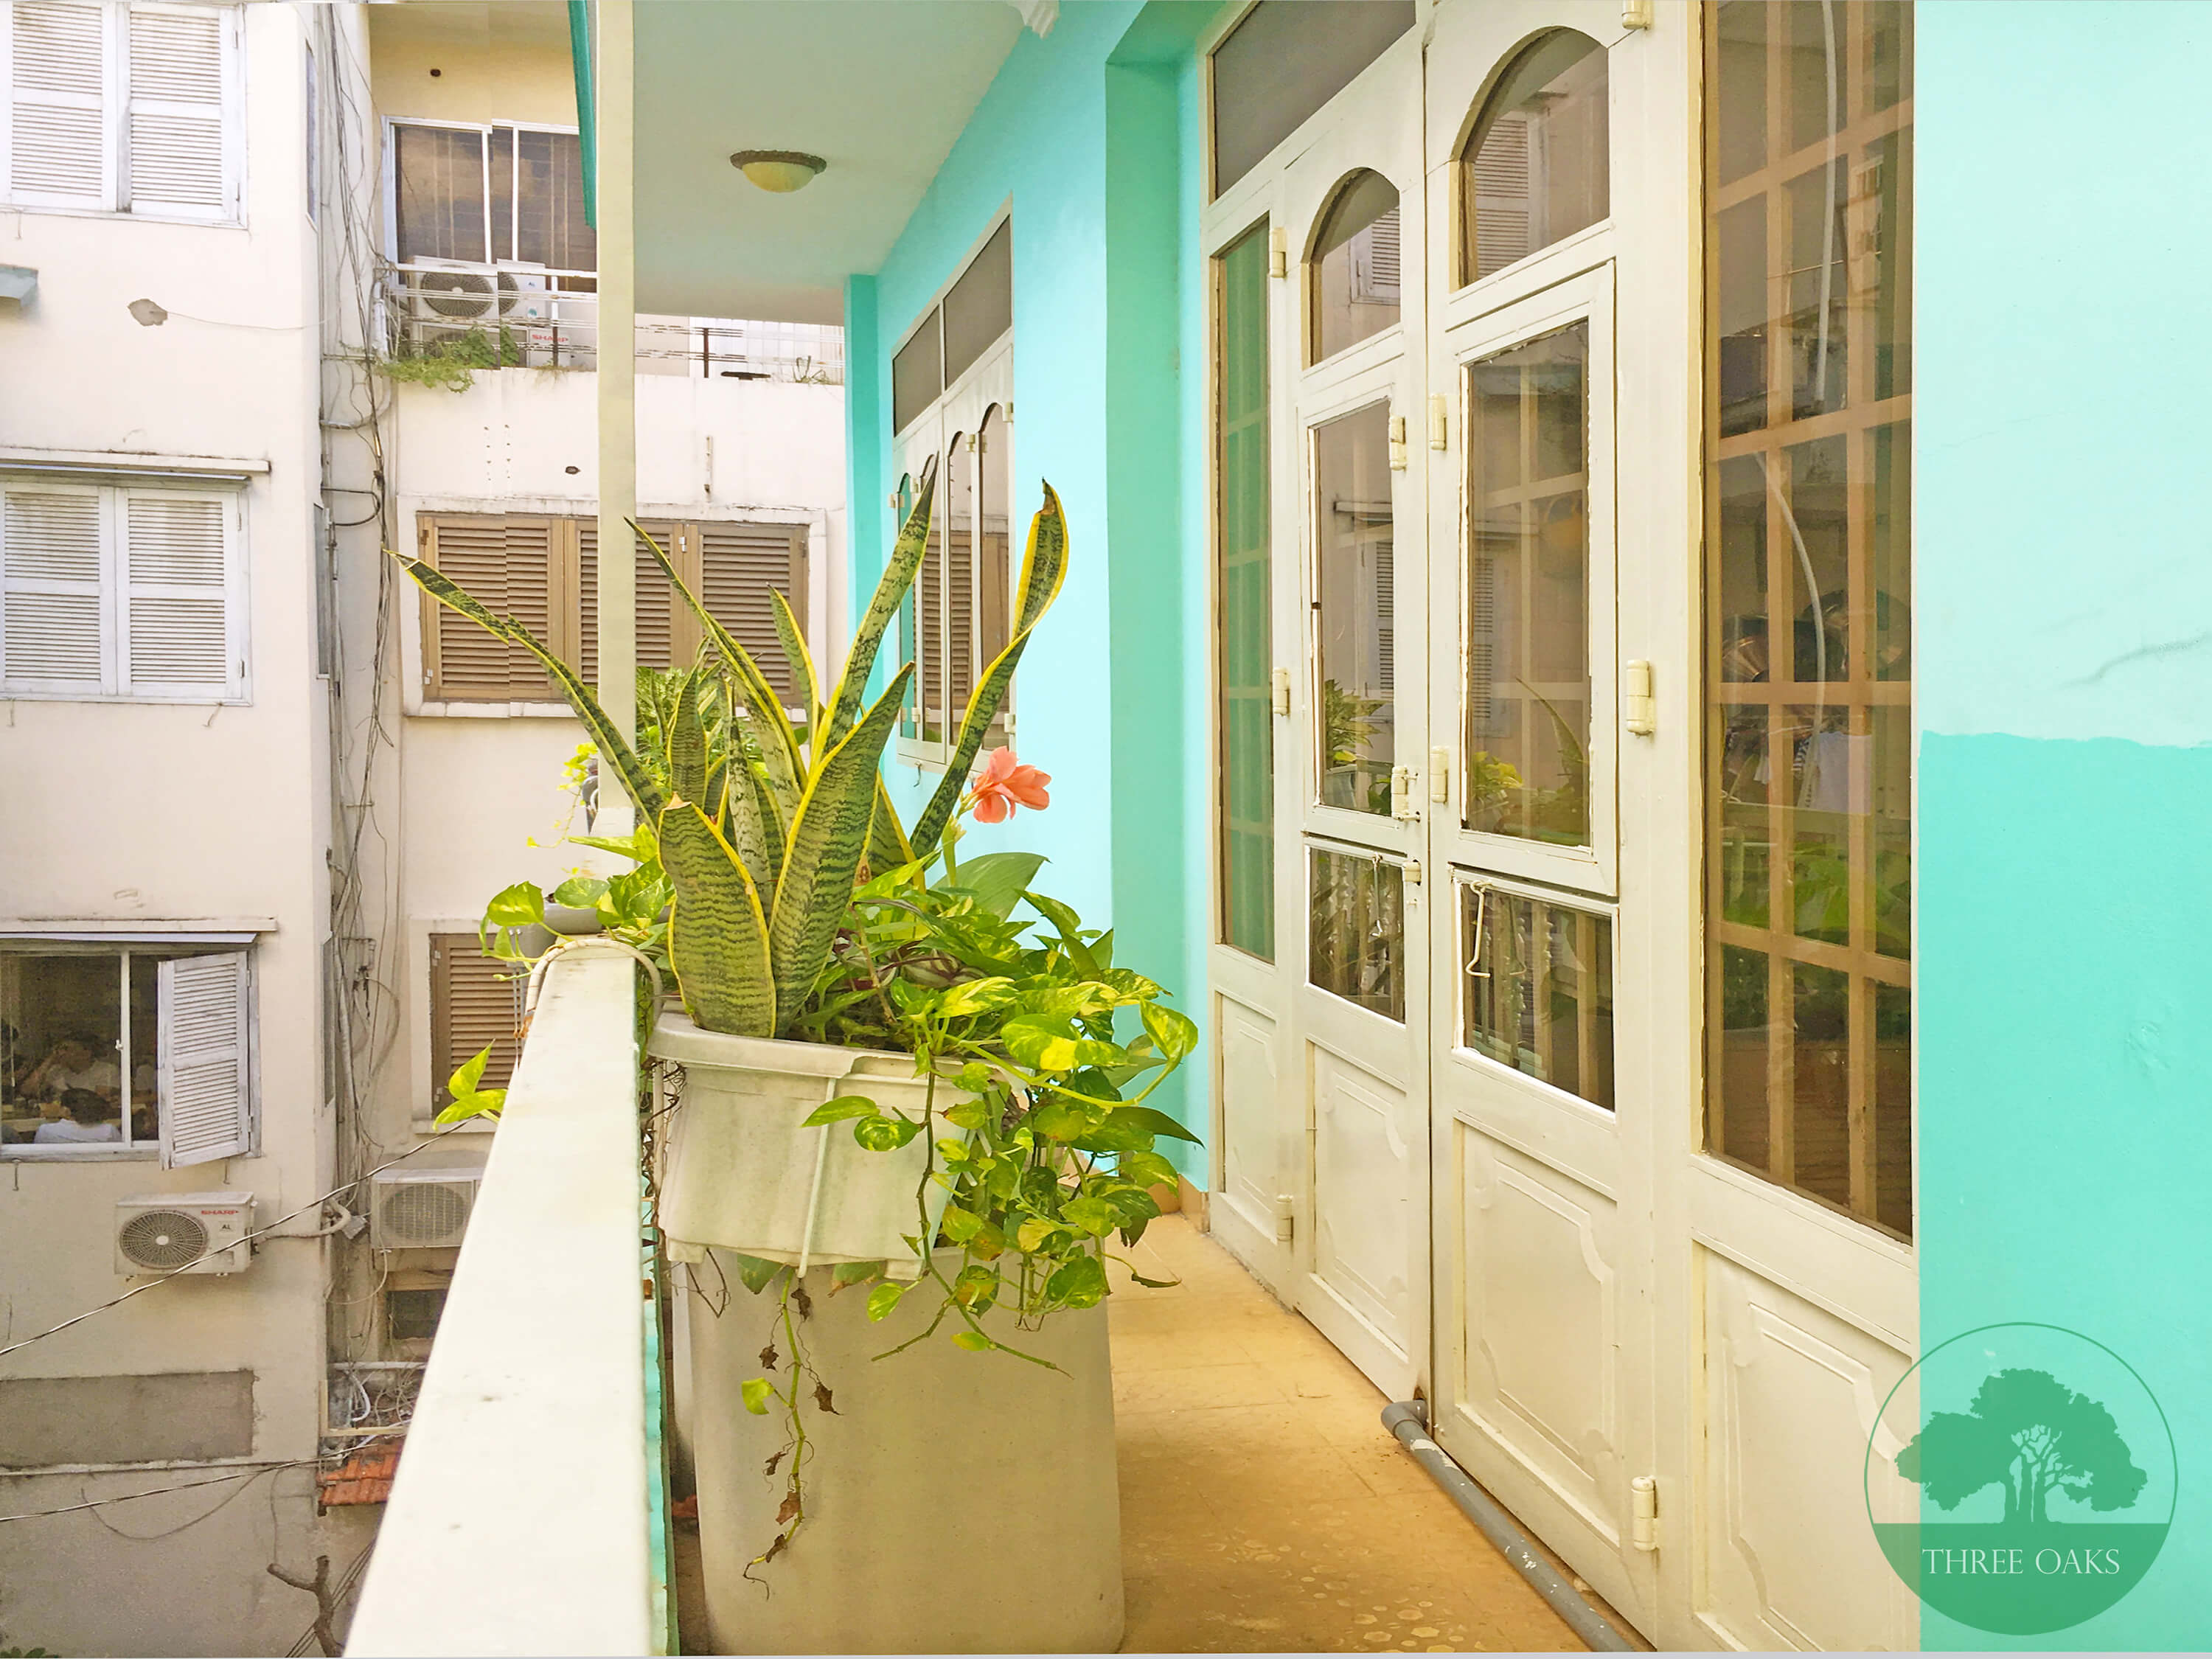 studios-and-apartments-for-rent-in-Ho-Chi-Minh-in-District-1-tybe-b-2